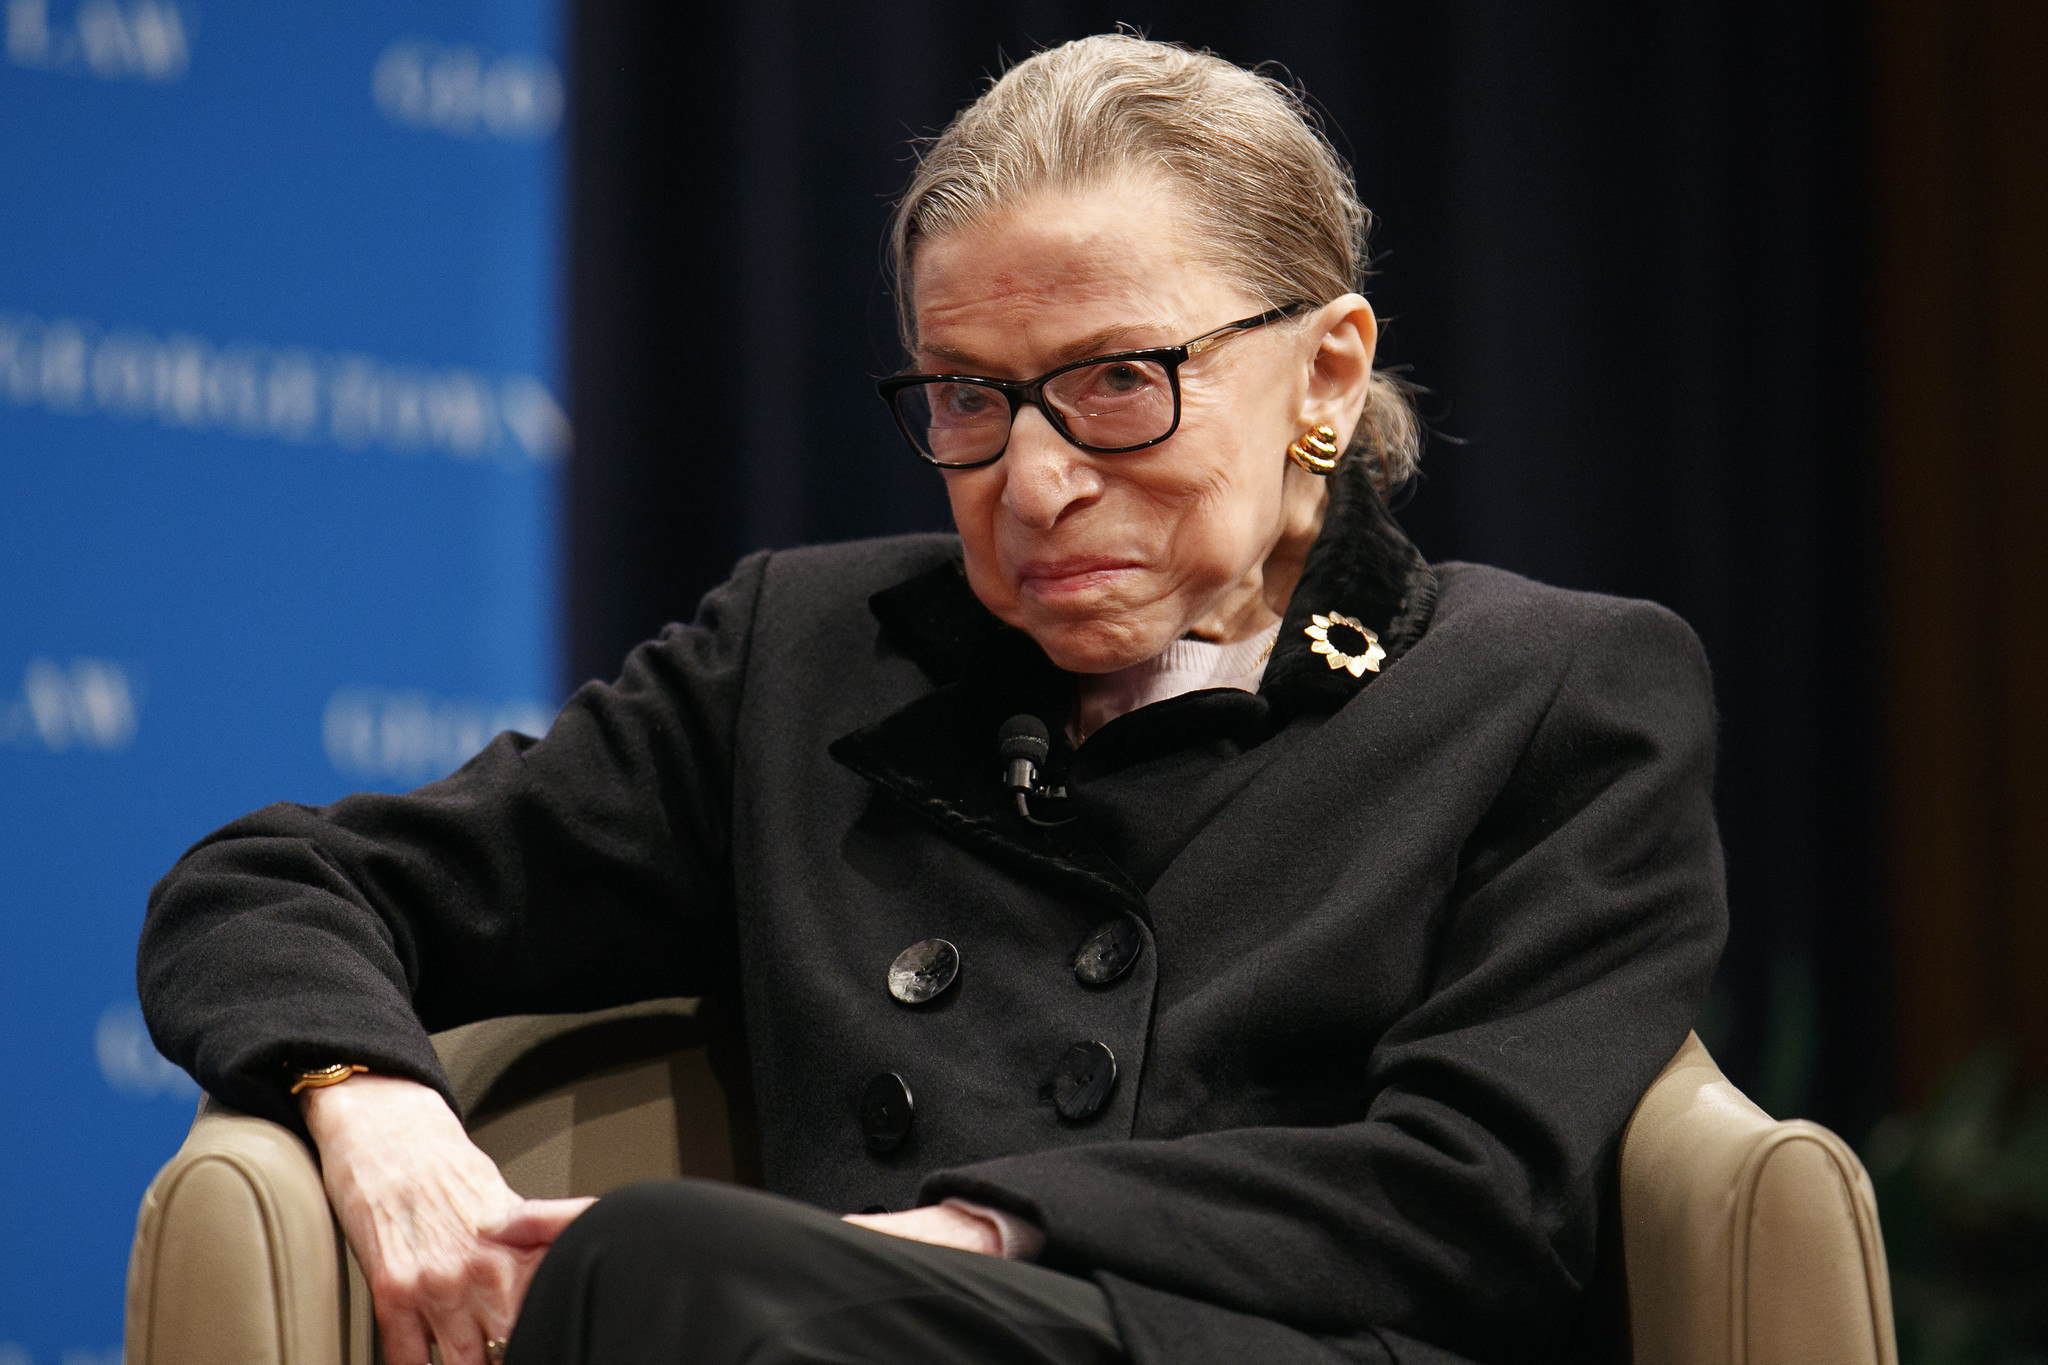 Supreme Court Justice Ruth Bader Ginsburg out of hospital after battling flu-like symptoms